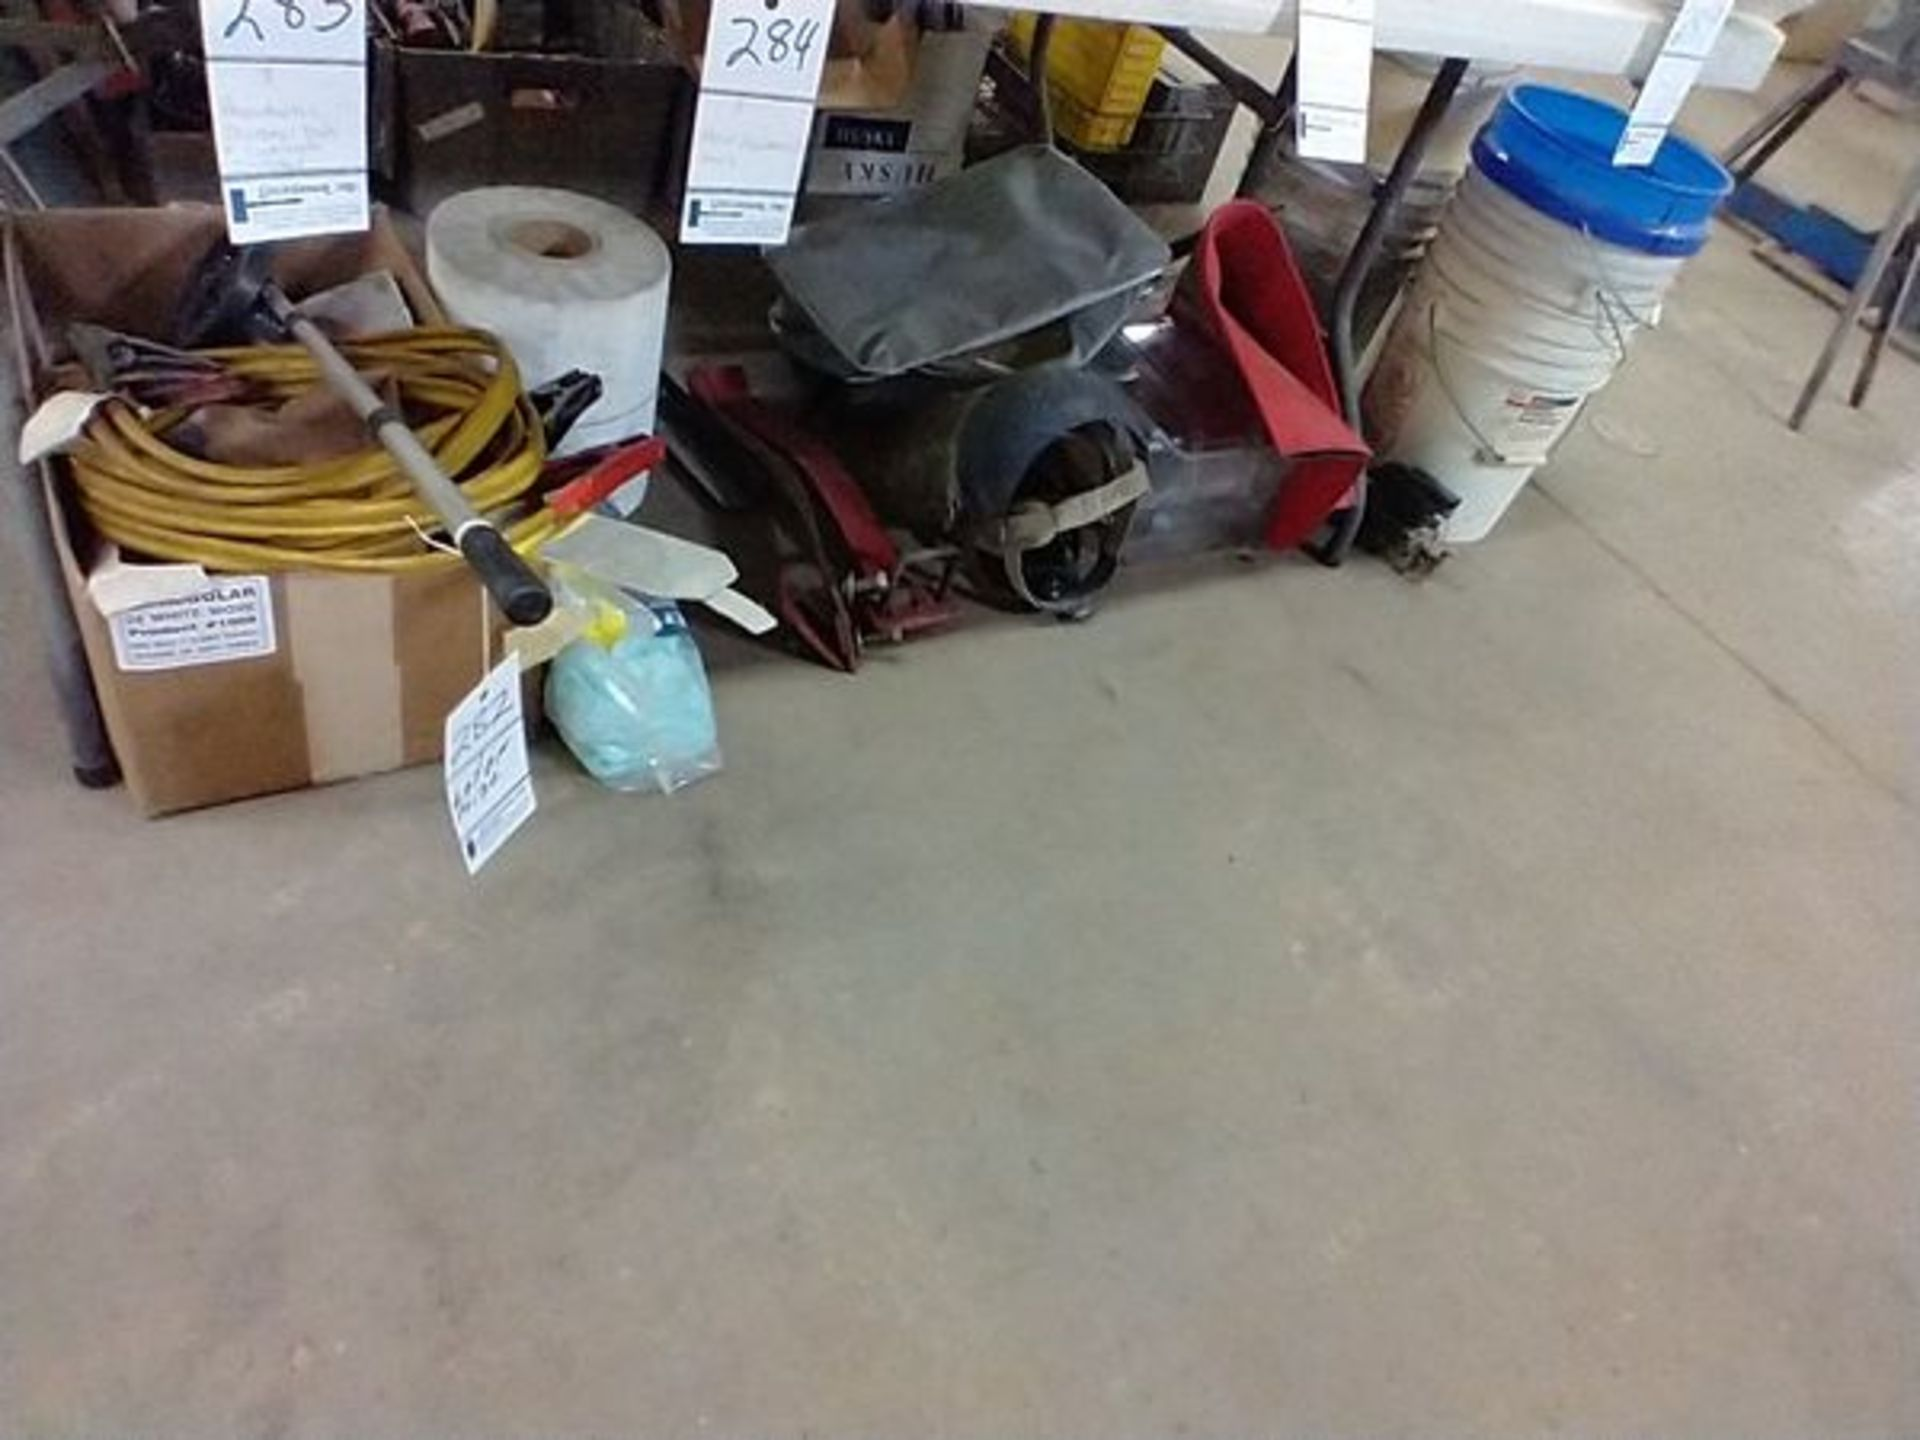 LOT OF MISC UNDER TABLE